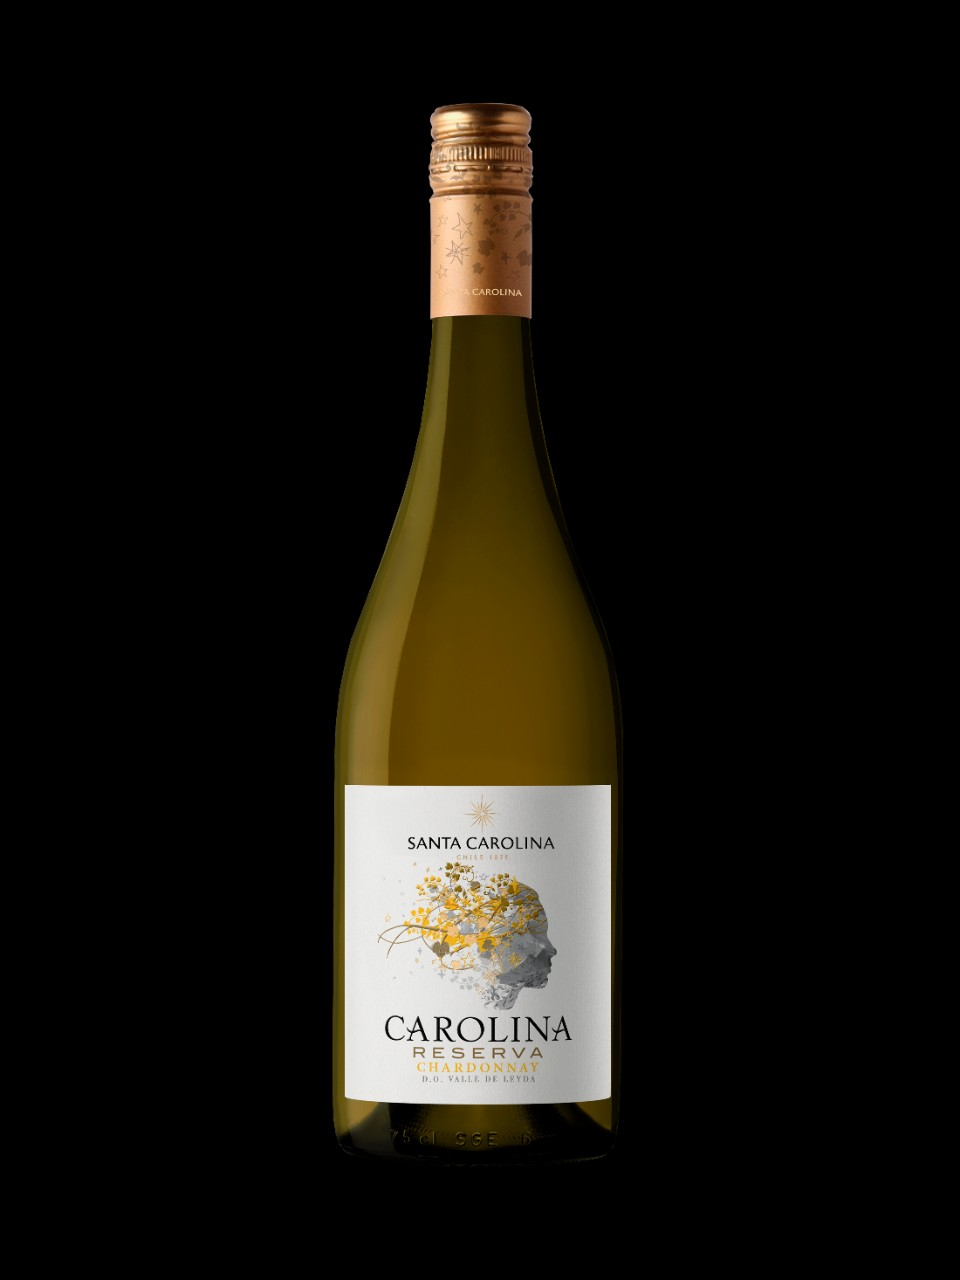 Image for Santa Carolina Reserva Chardonnay from LCBO